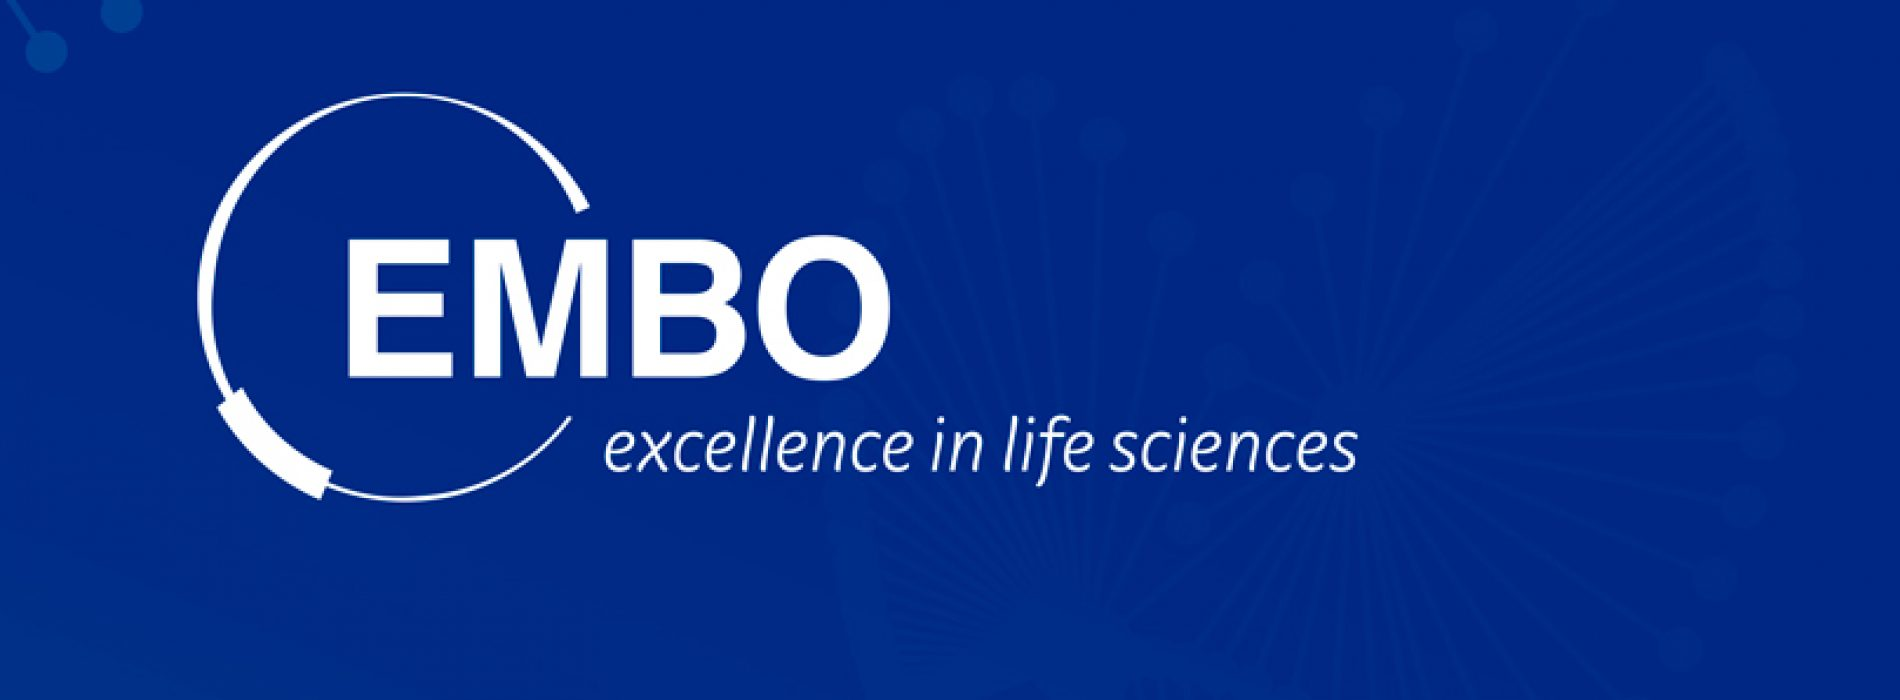 EMBO funding opportunities for life scientists in Chile